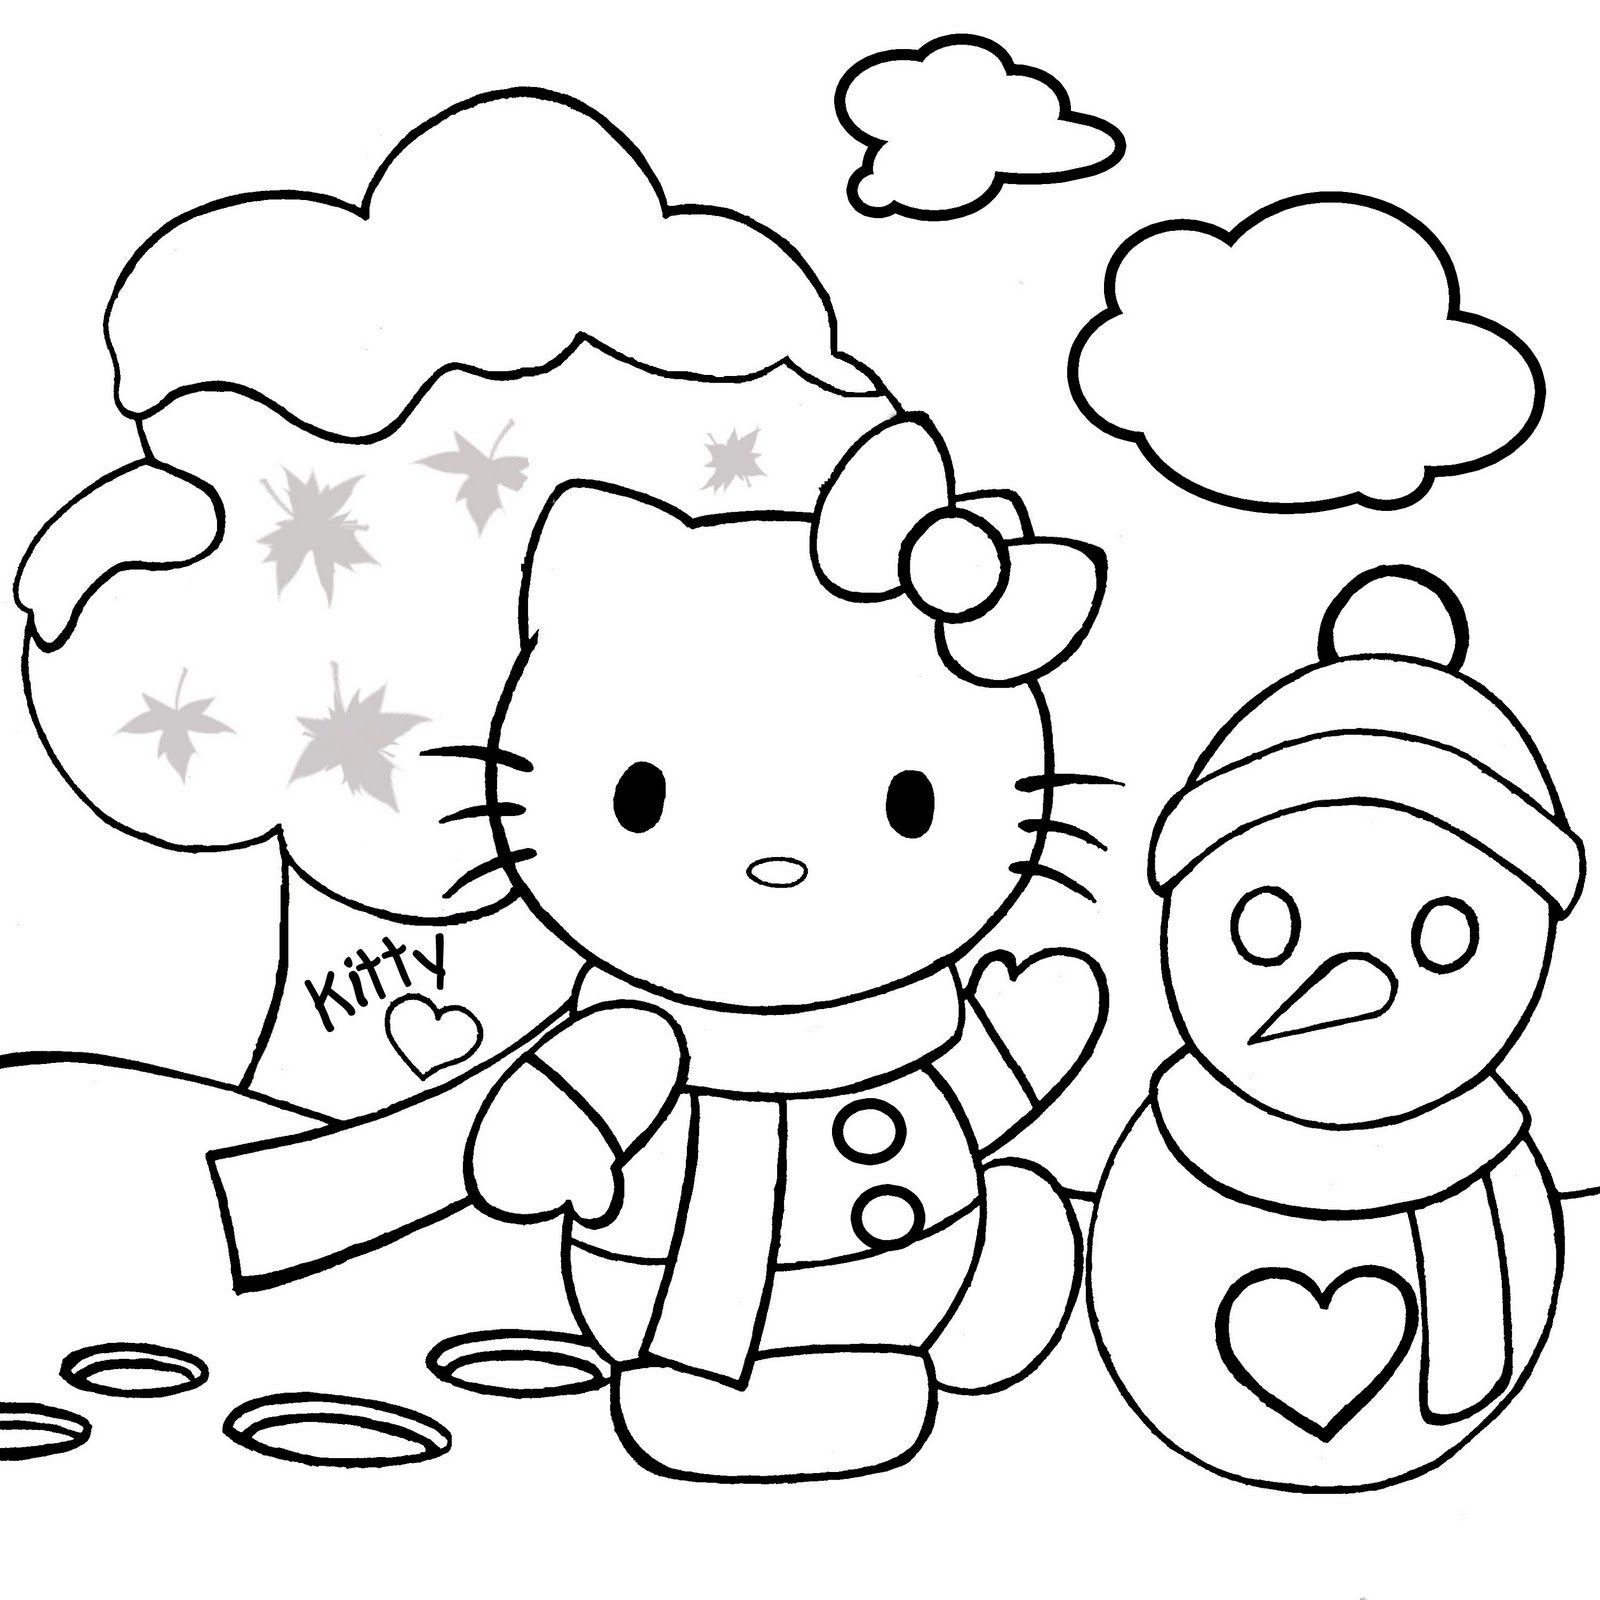 1600x1600 Hello Kitty Coloring Pages For Kids Xmas Christmas